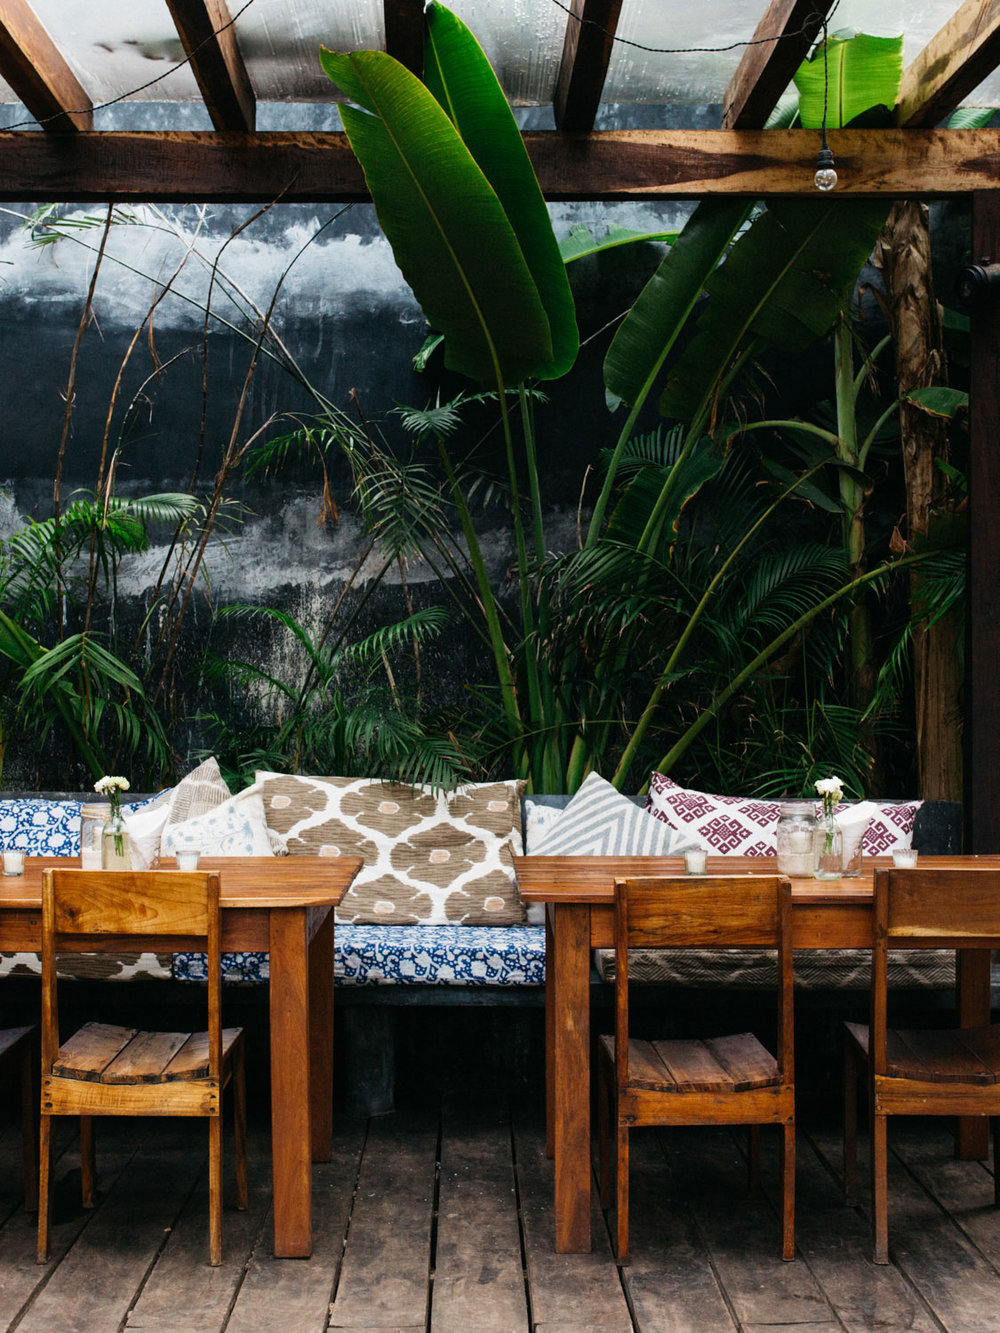 The_Ink_Collective_Inside_Ink_Articles_Travel_Review_Tulum_Bohemian_Paradise_45.jpg